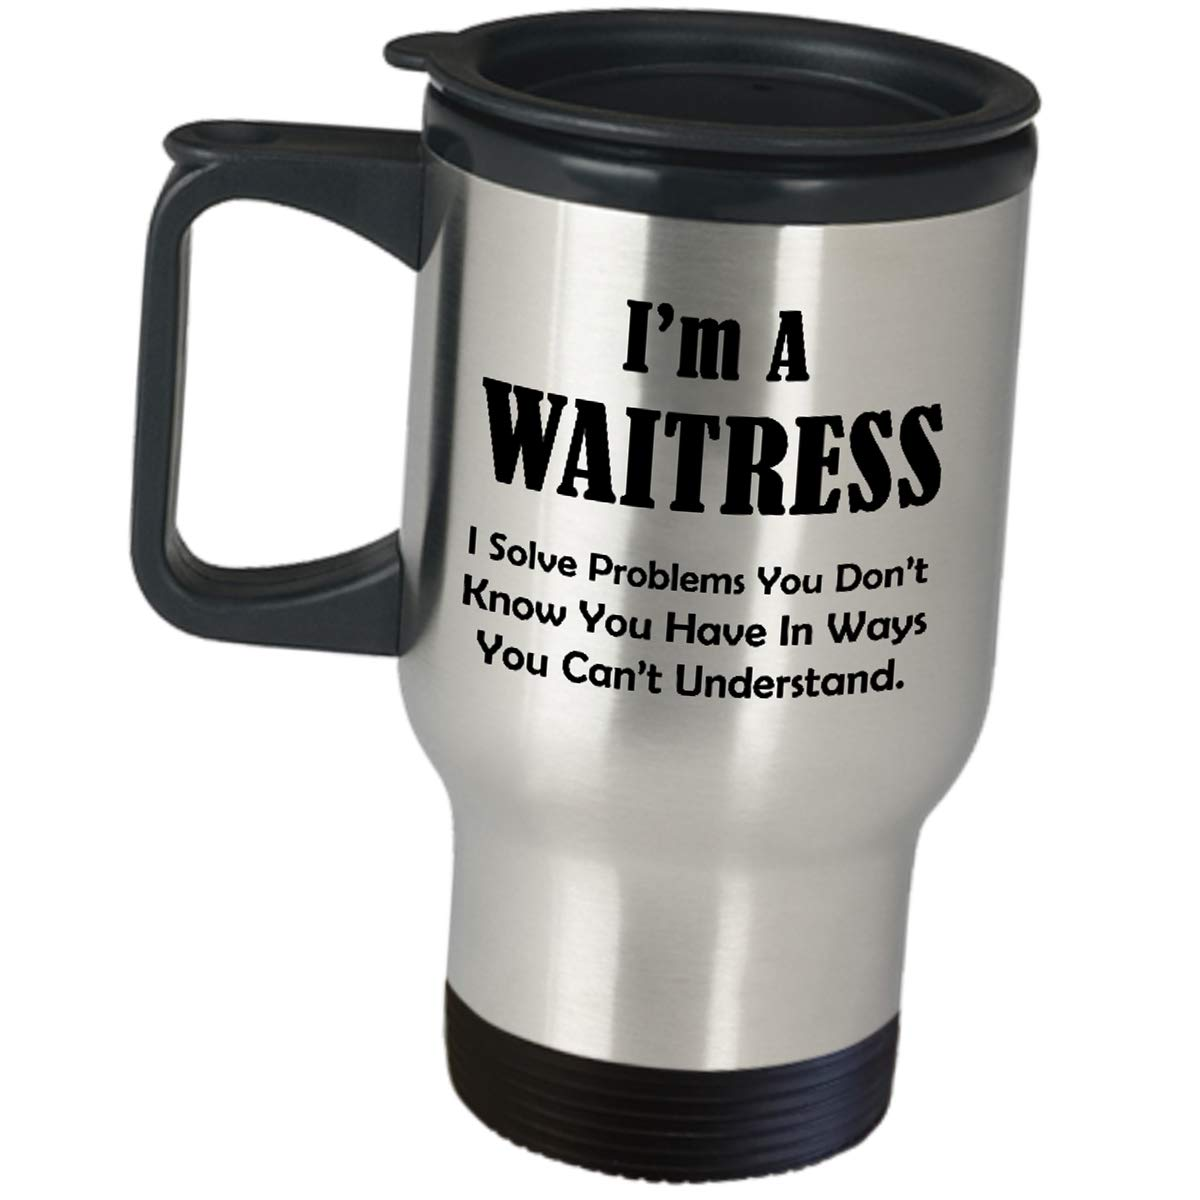 Funny Cute Gag Gifts for Waitress - I Solve Problems You Dont Know - Appreciation For Women Server Travel Mug Stainless Steel Insulated Coffee Tumbler Restaurant Cafeteria Food Order Taker Fun Job